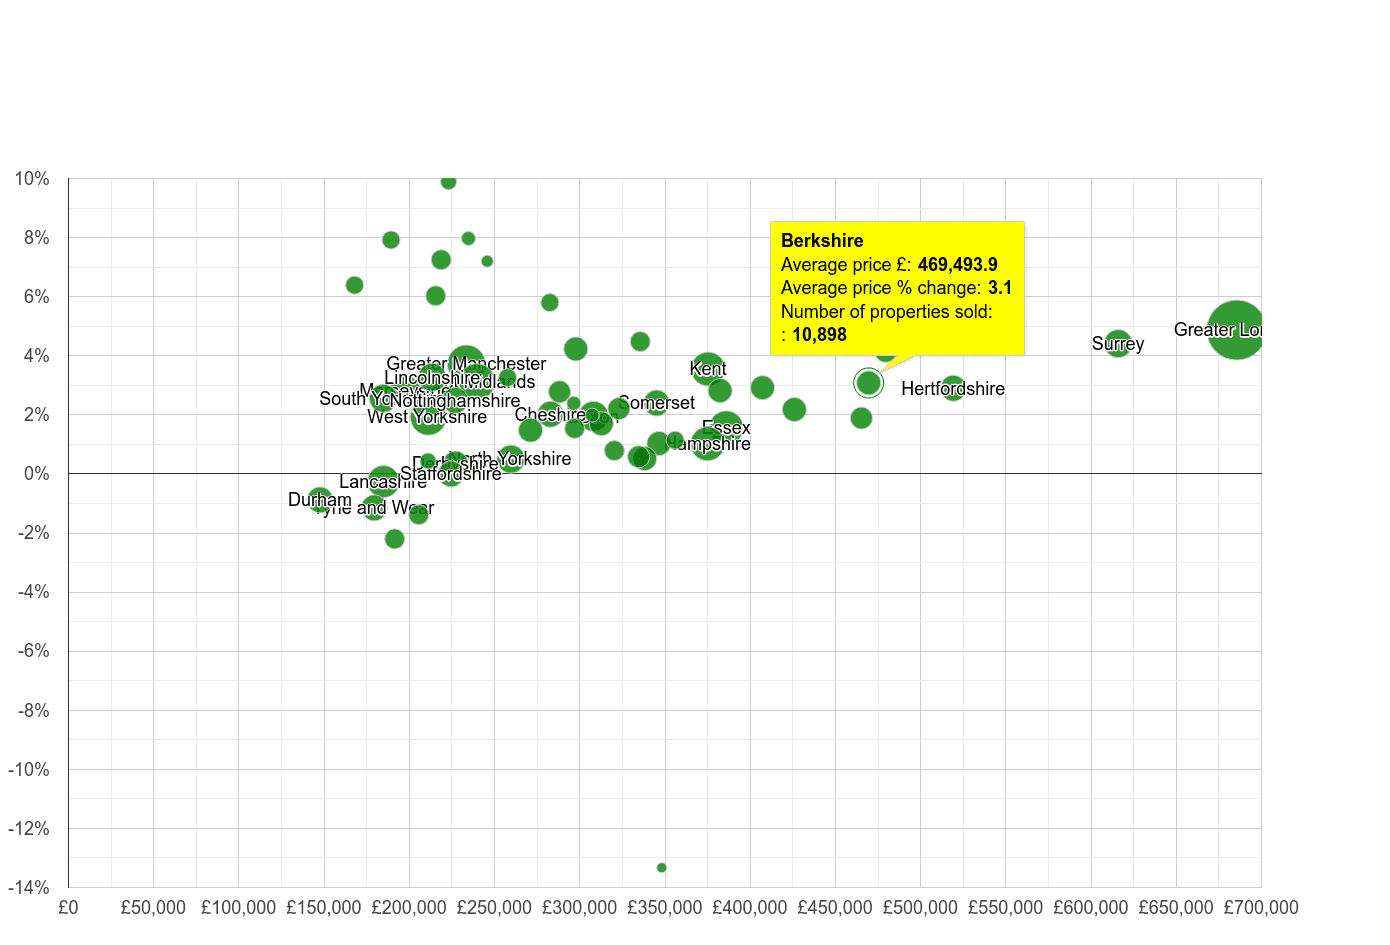 Berkshire house prices compared to other counties